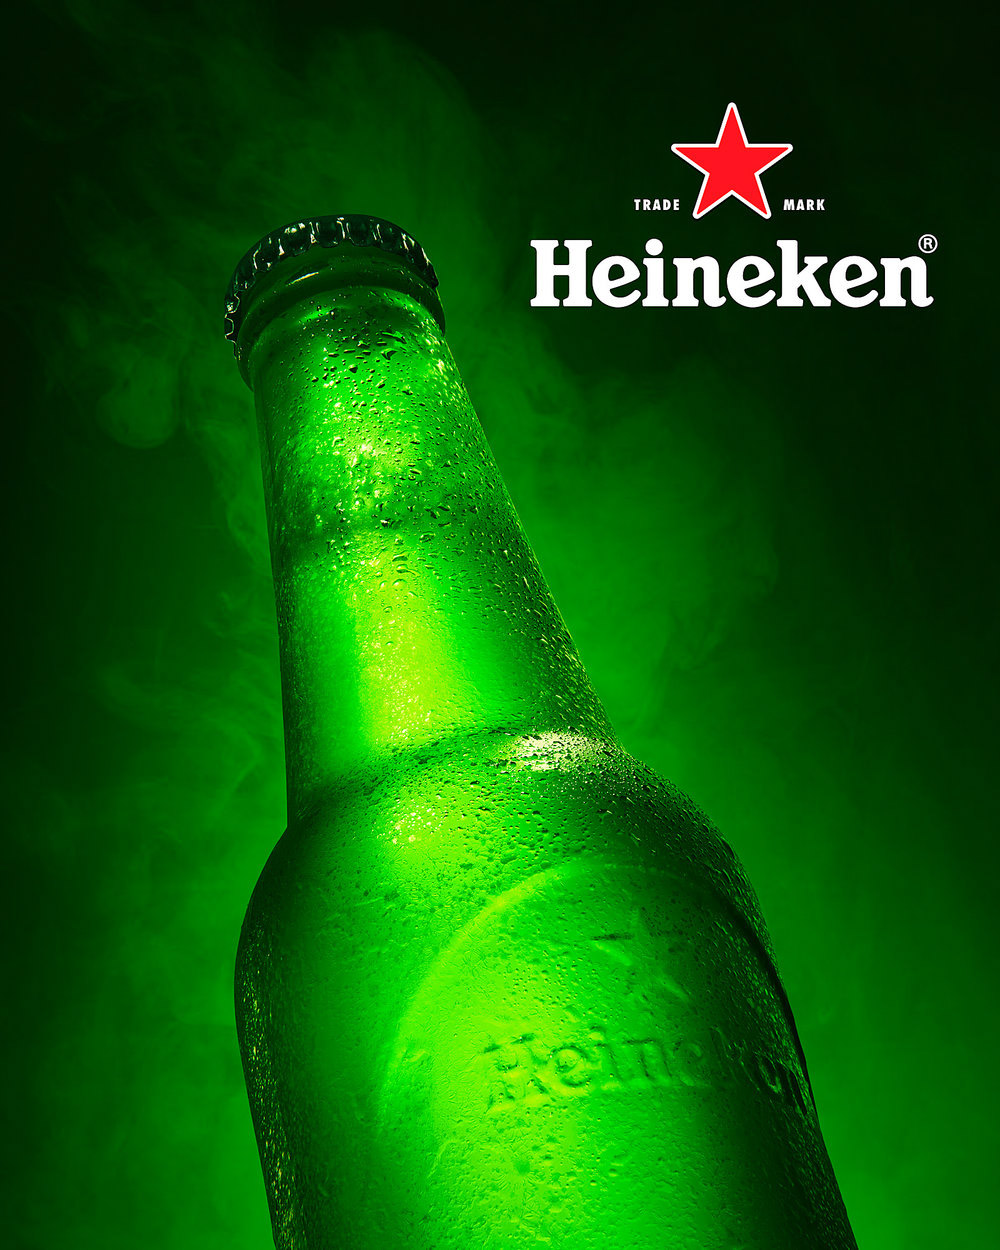 001-181019_NS_Heineken_290_FB_Hero_BMS_R1_1_web.jpg